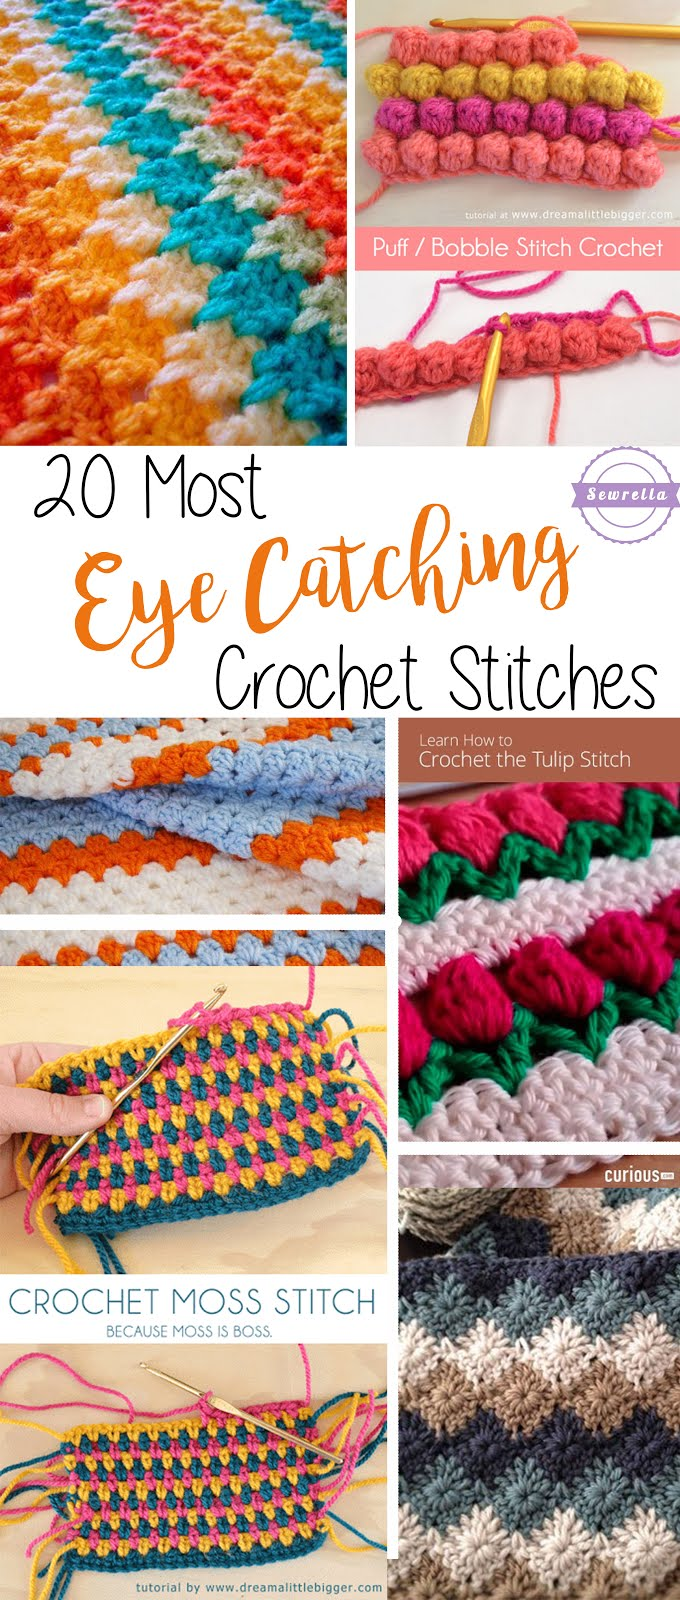 20 Most Eye-Catching Crochet Stitches - Sewrella